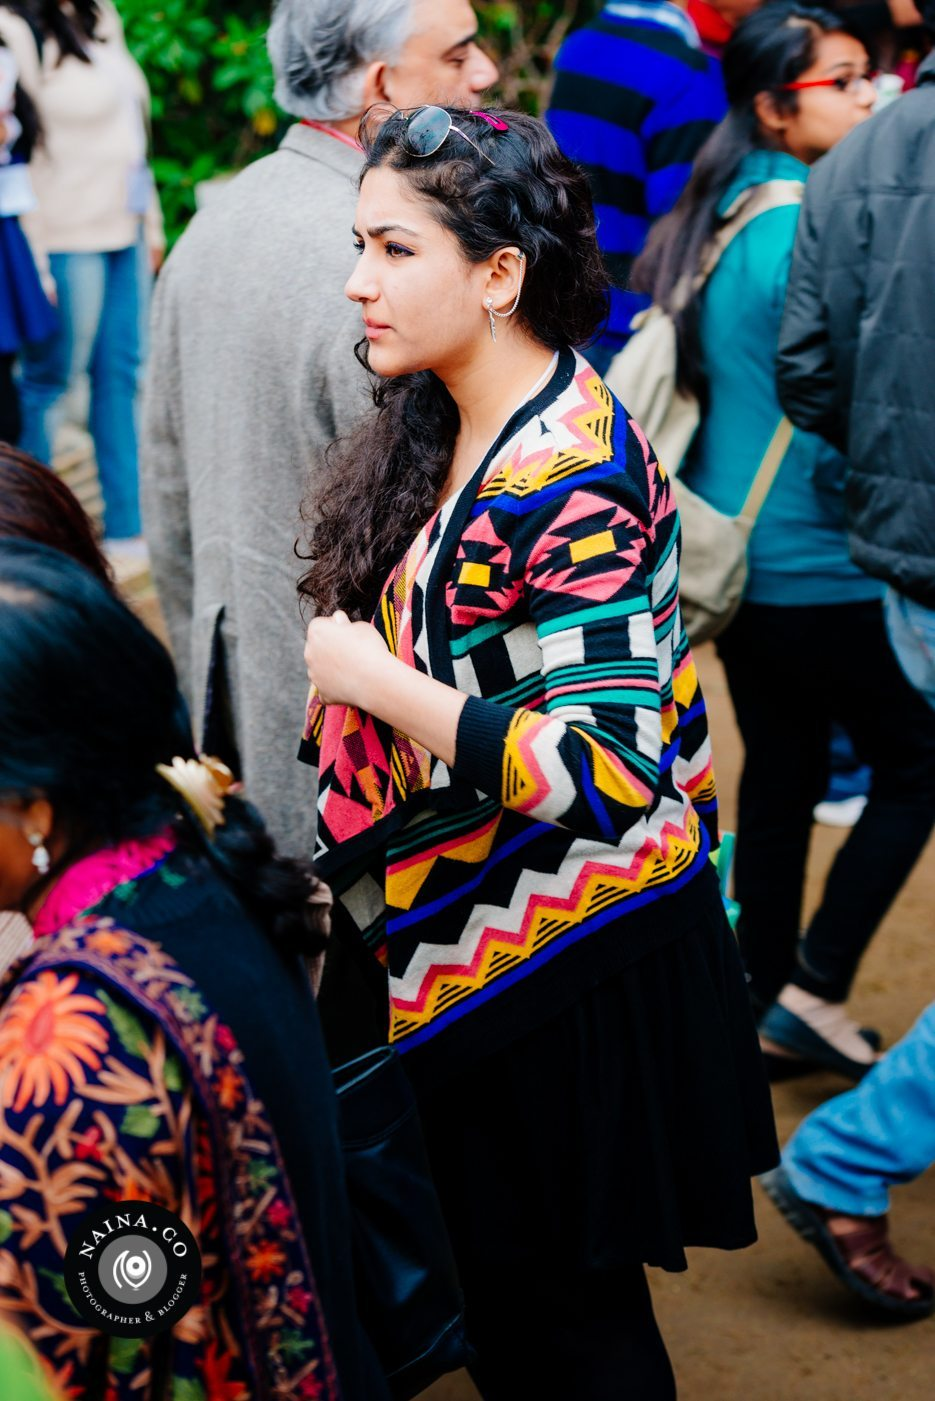 Naina.co-Raconteuse-Visuelle-Photographer-Blogger-Storyteller-Luxury-Lifestyle-January-2015-Jaipur-Literature-Festival-StRegis-LeMeridien-ZeeJLF-EyesForStreetStyle-35